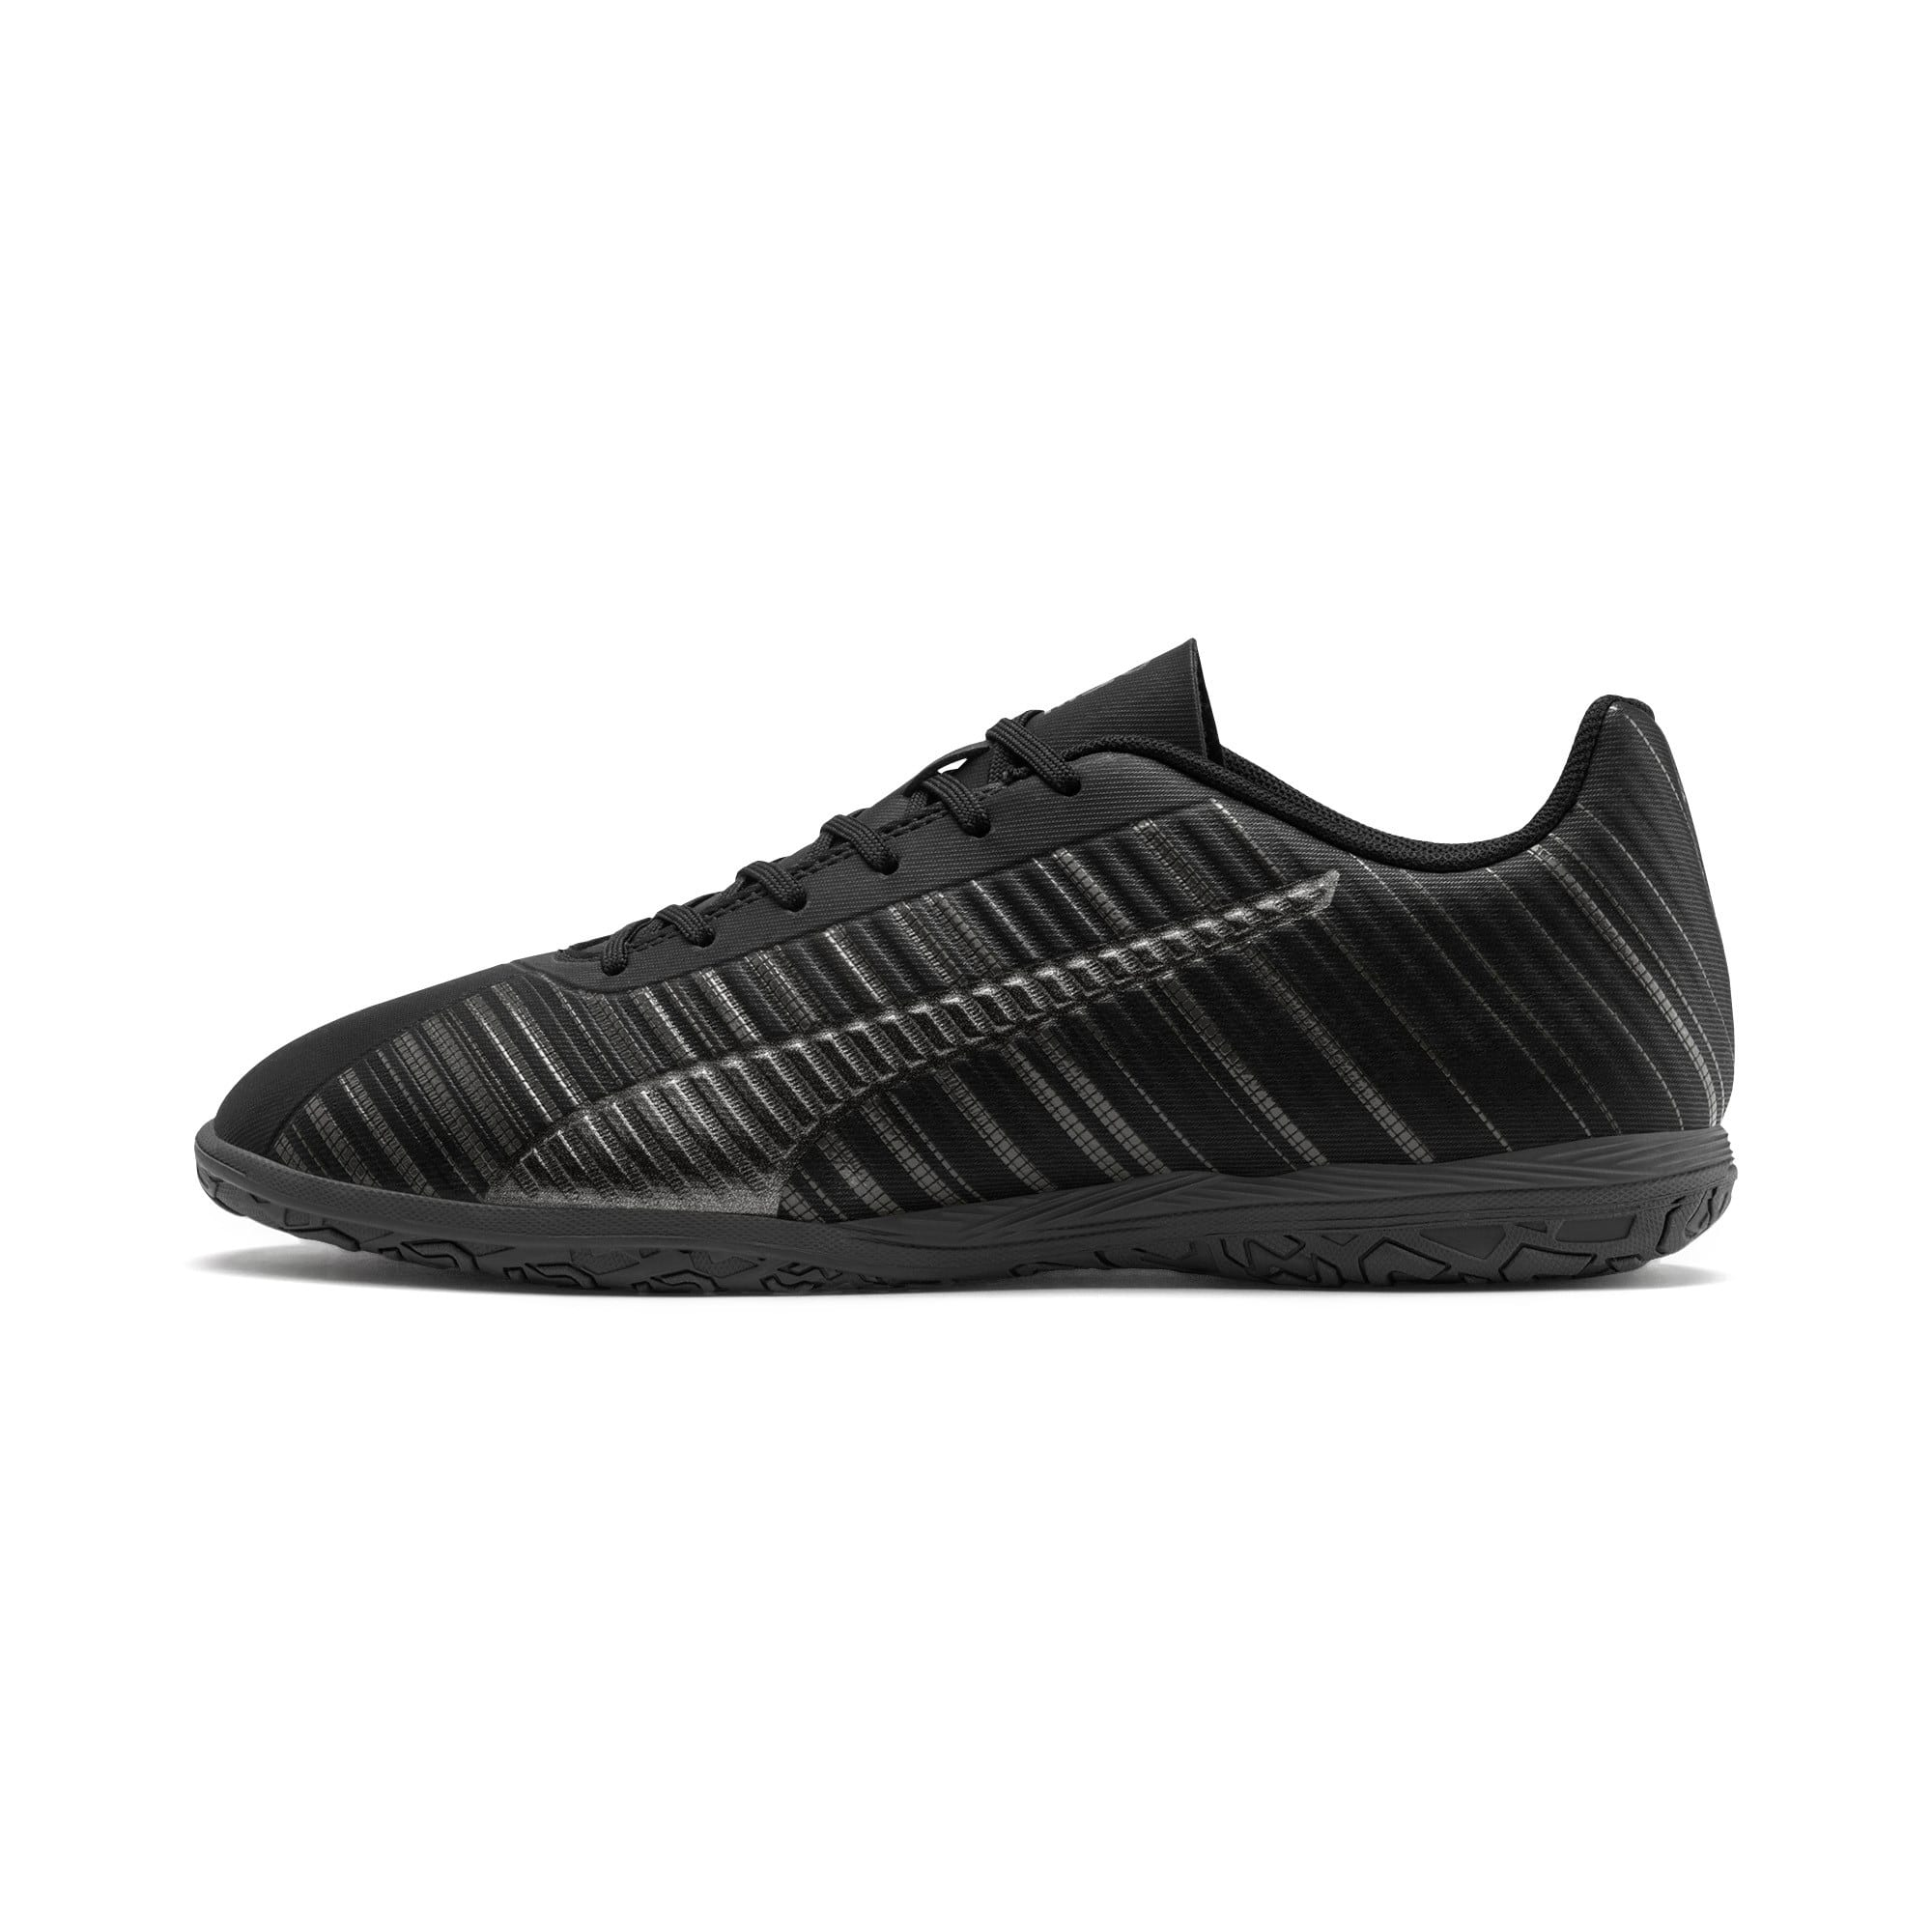 Thumbnail 1 of PUMA ONE 5.4 IT Herren Fußballschuhe, Black-Black-Puma Aged Silver, medium